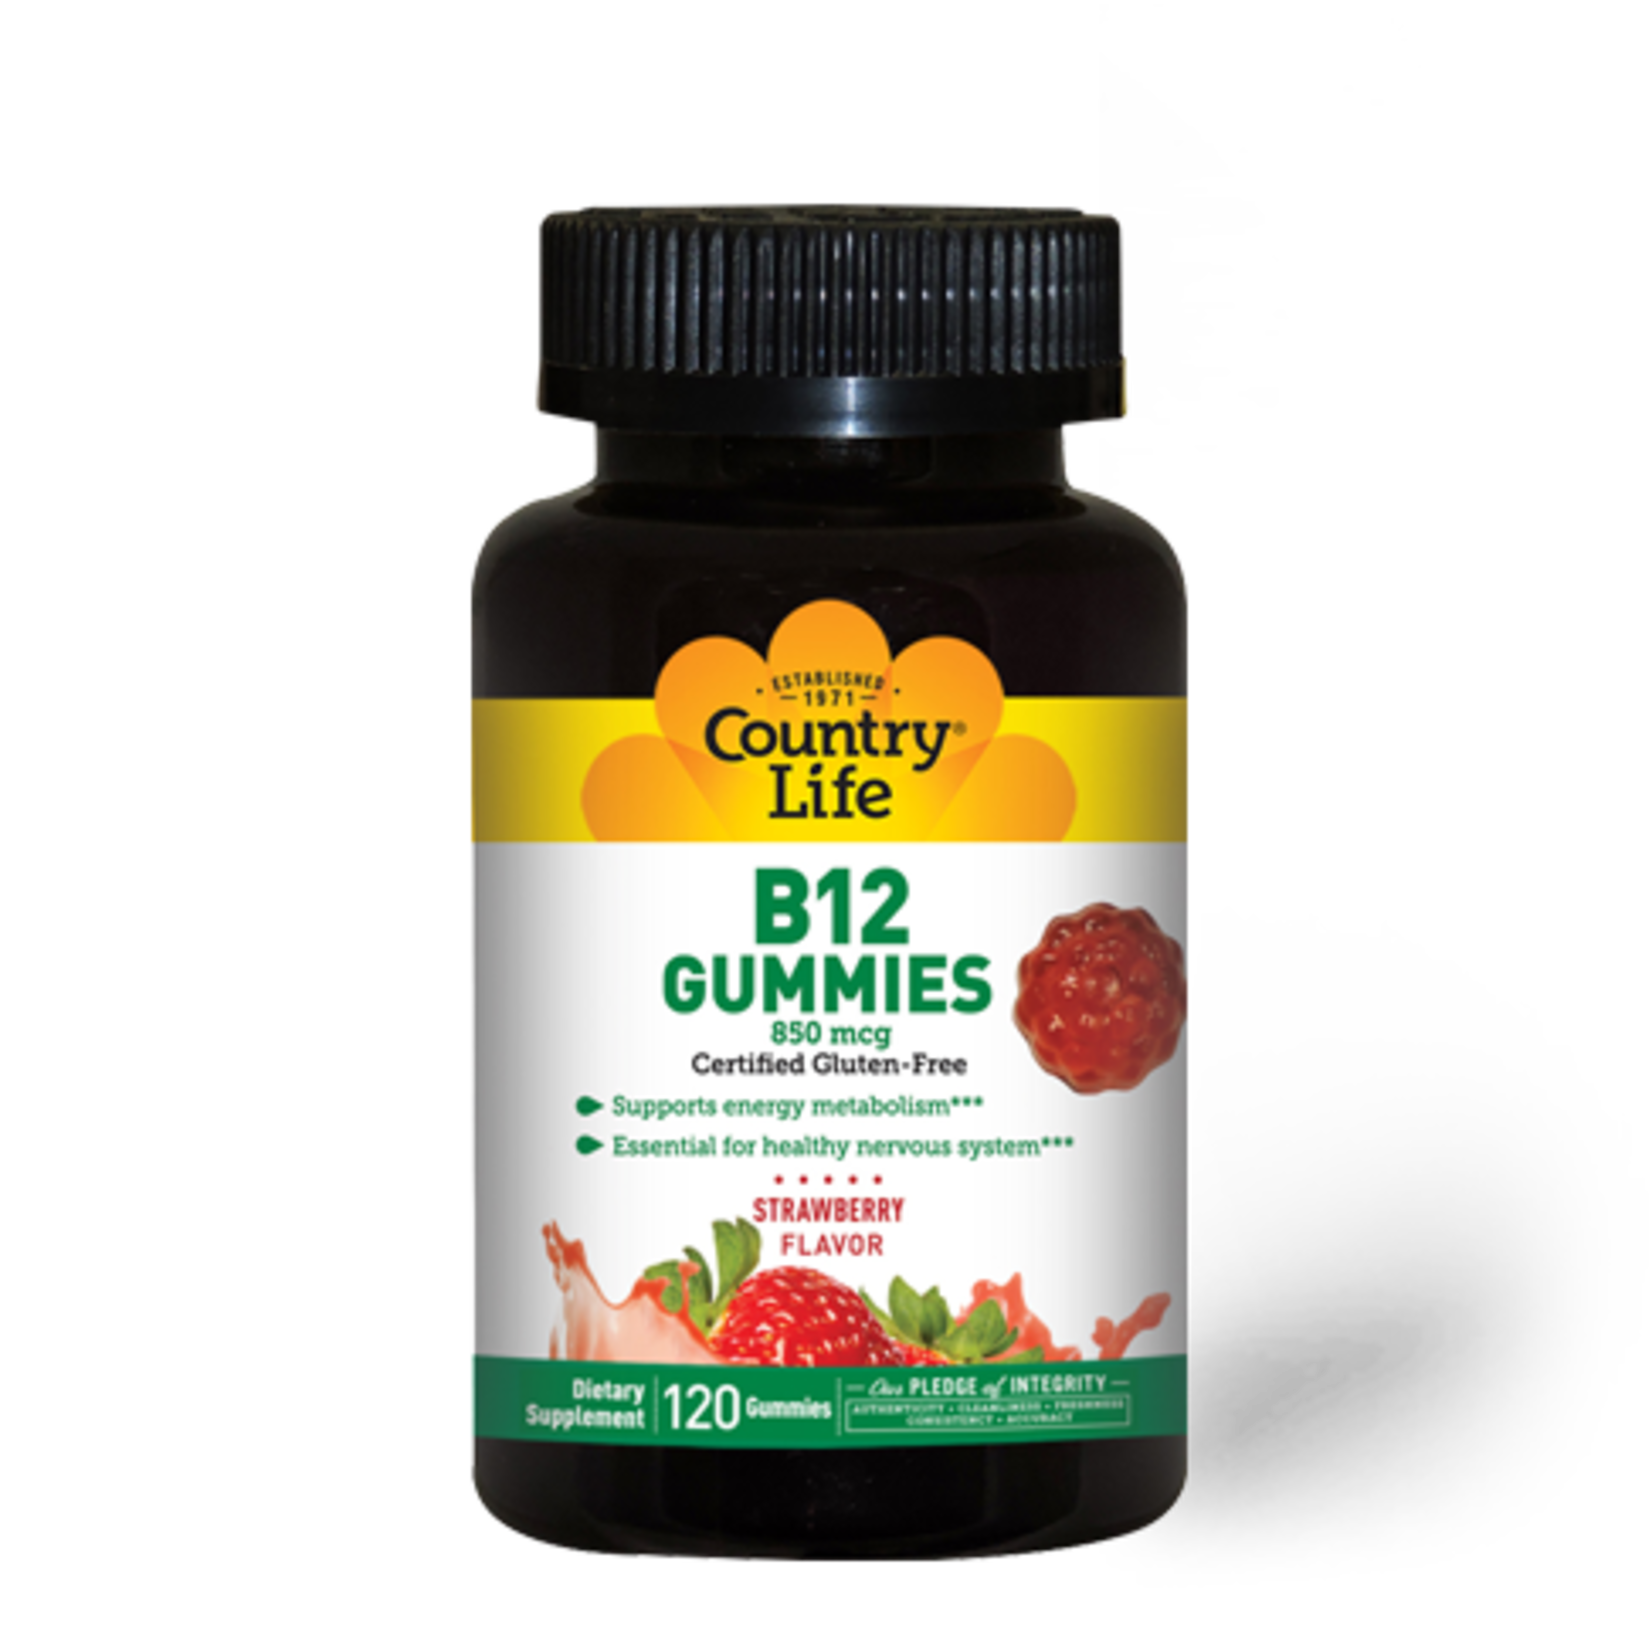 Country Life Country Life B12 Gummies